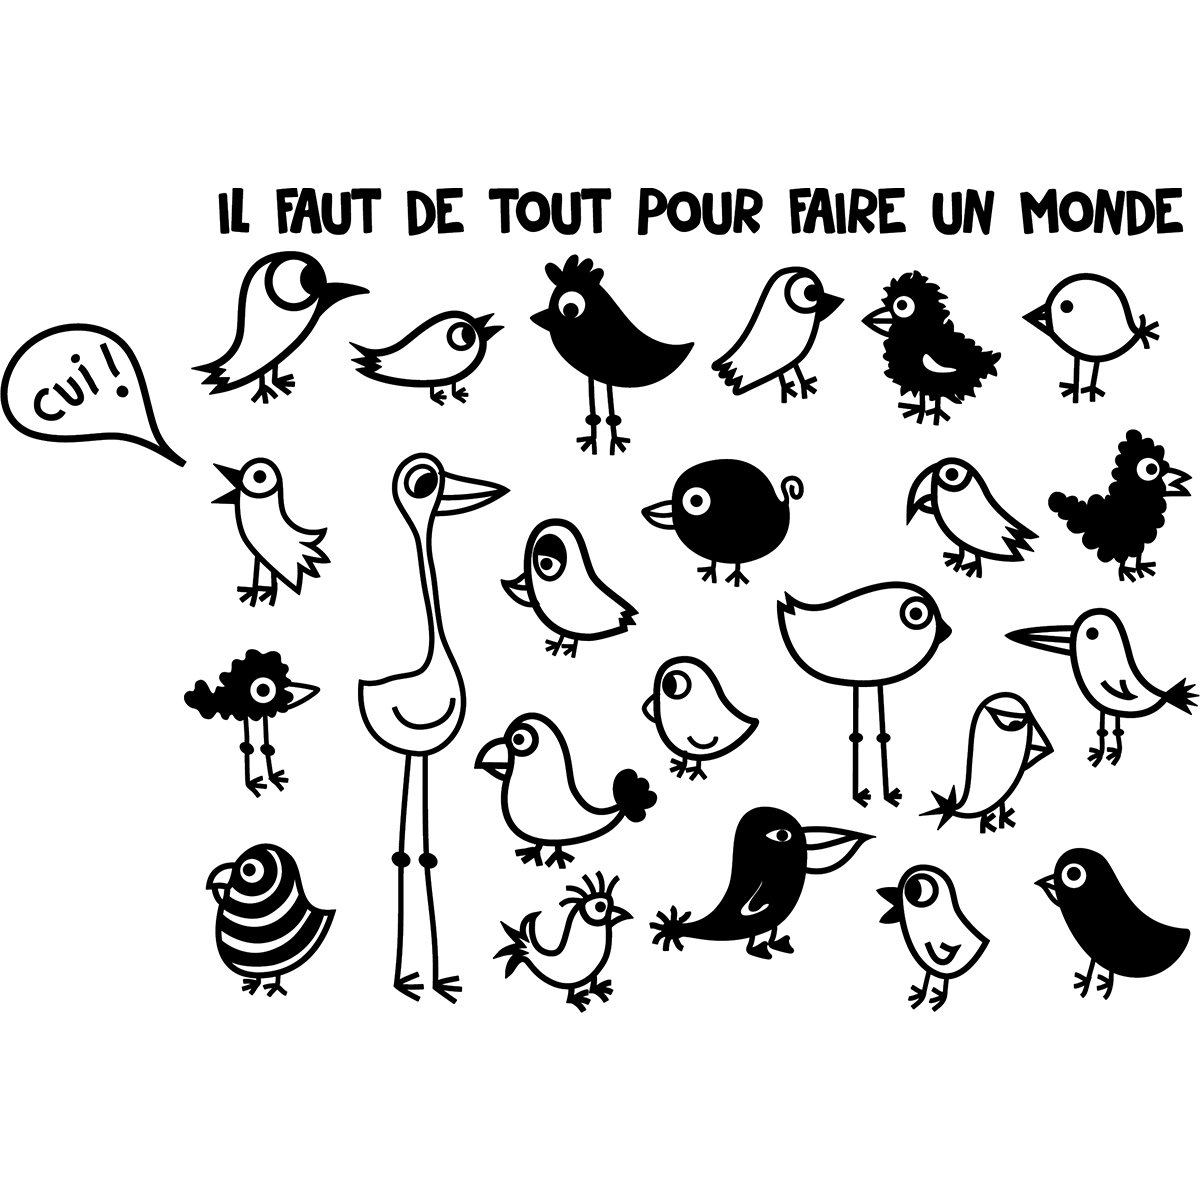 sticker il faut de tout pour faire un monde stickers animaux oiseaux ambiance sticker. Black Bedroom Furniture Sets. Home Design Ideas